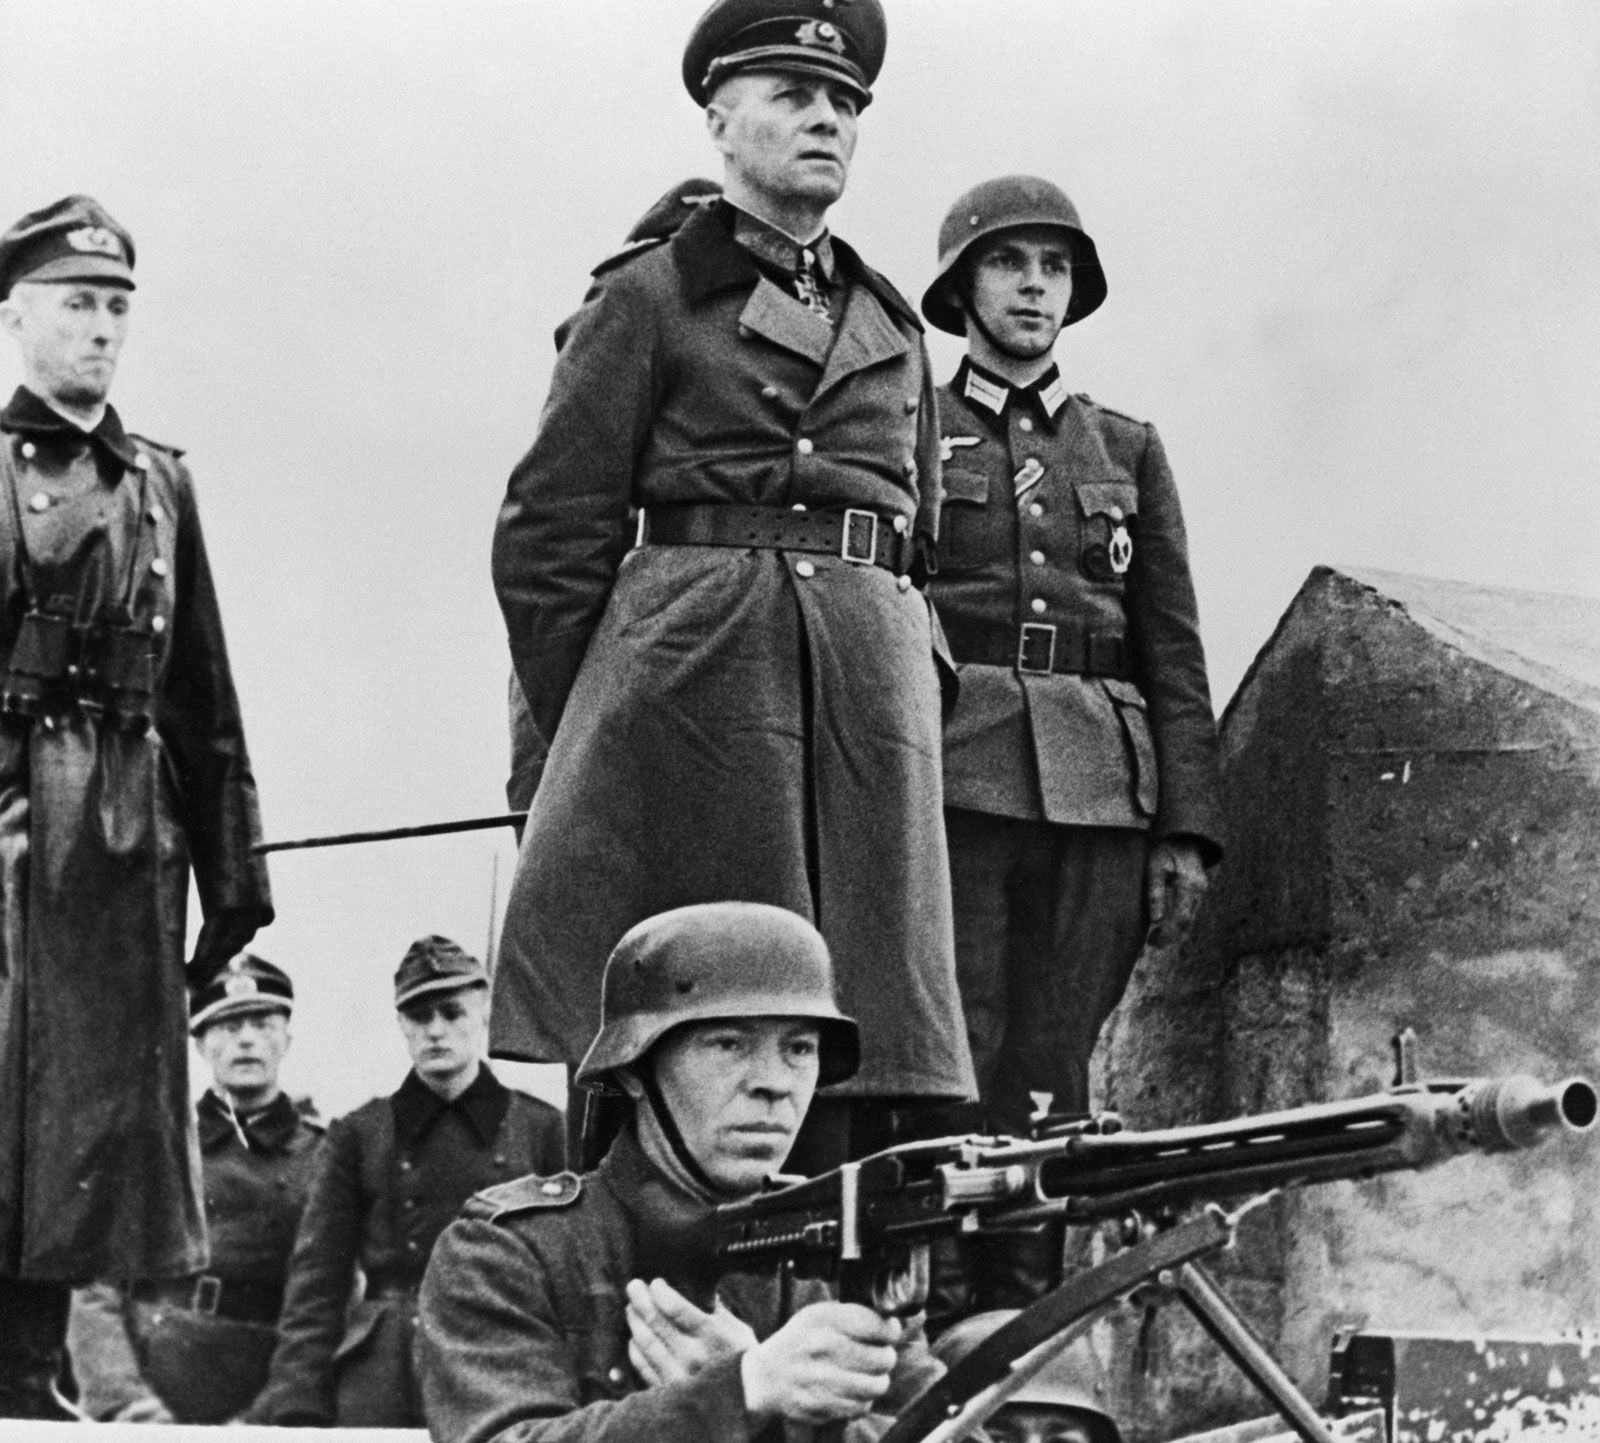 General-Field Marshal of the German Army Erwin Rommel inspects the coastal defenses of Normandy, 1944 (Archive photos)